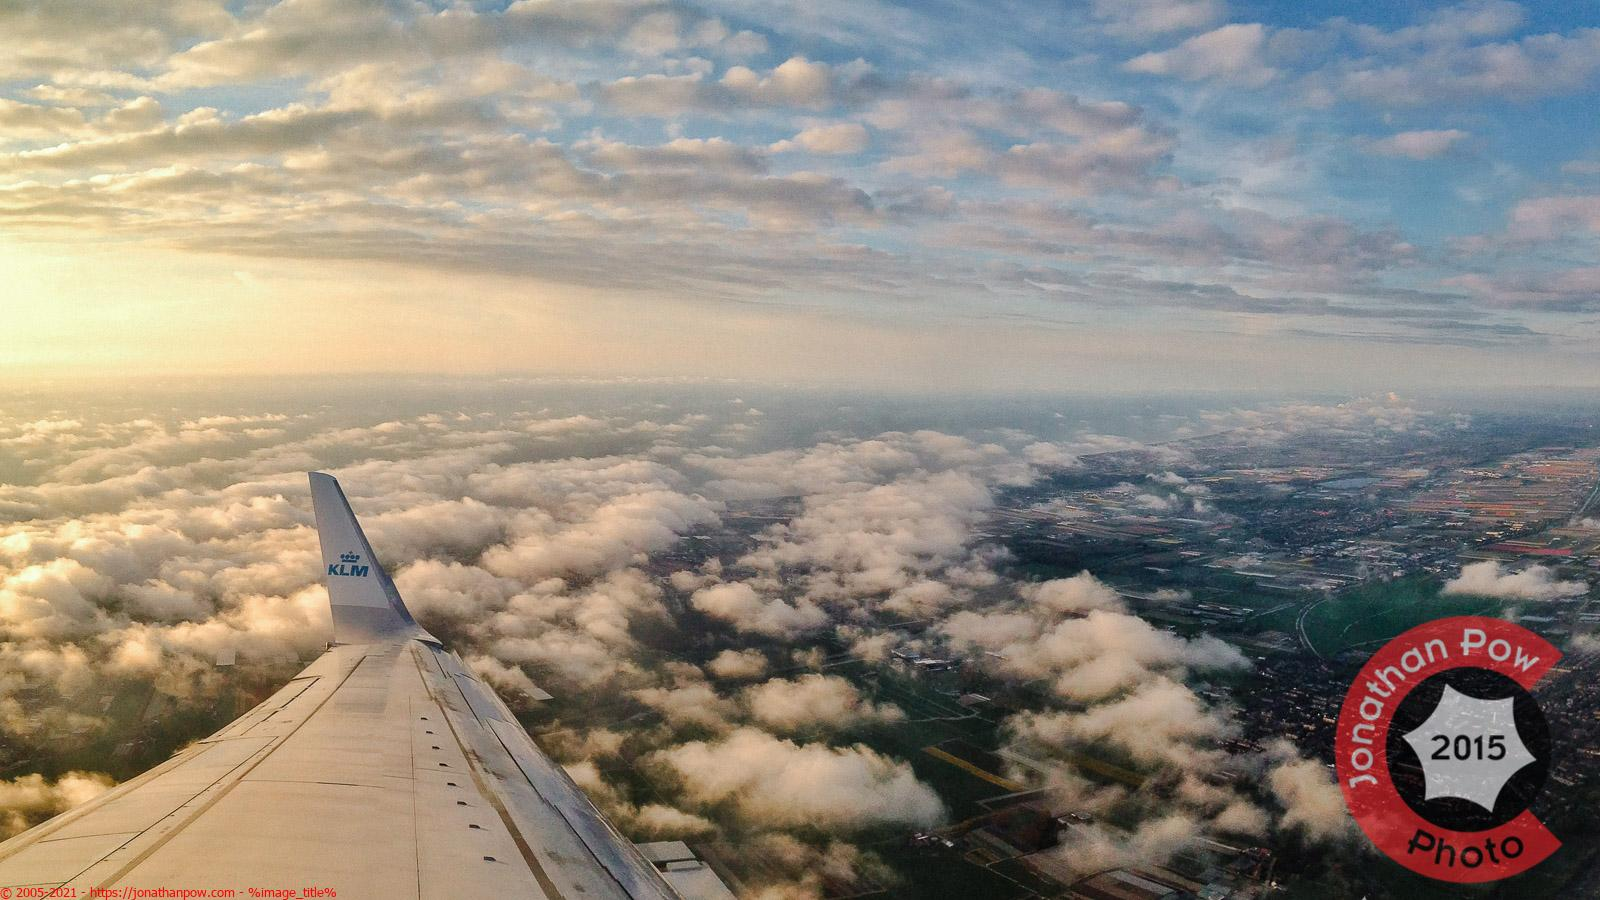 Manchester Photographer - Flying over Manchester Airport